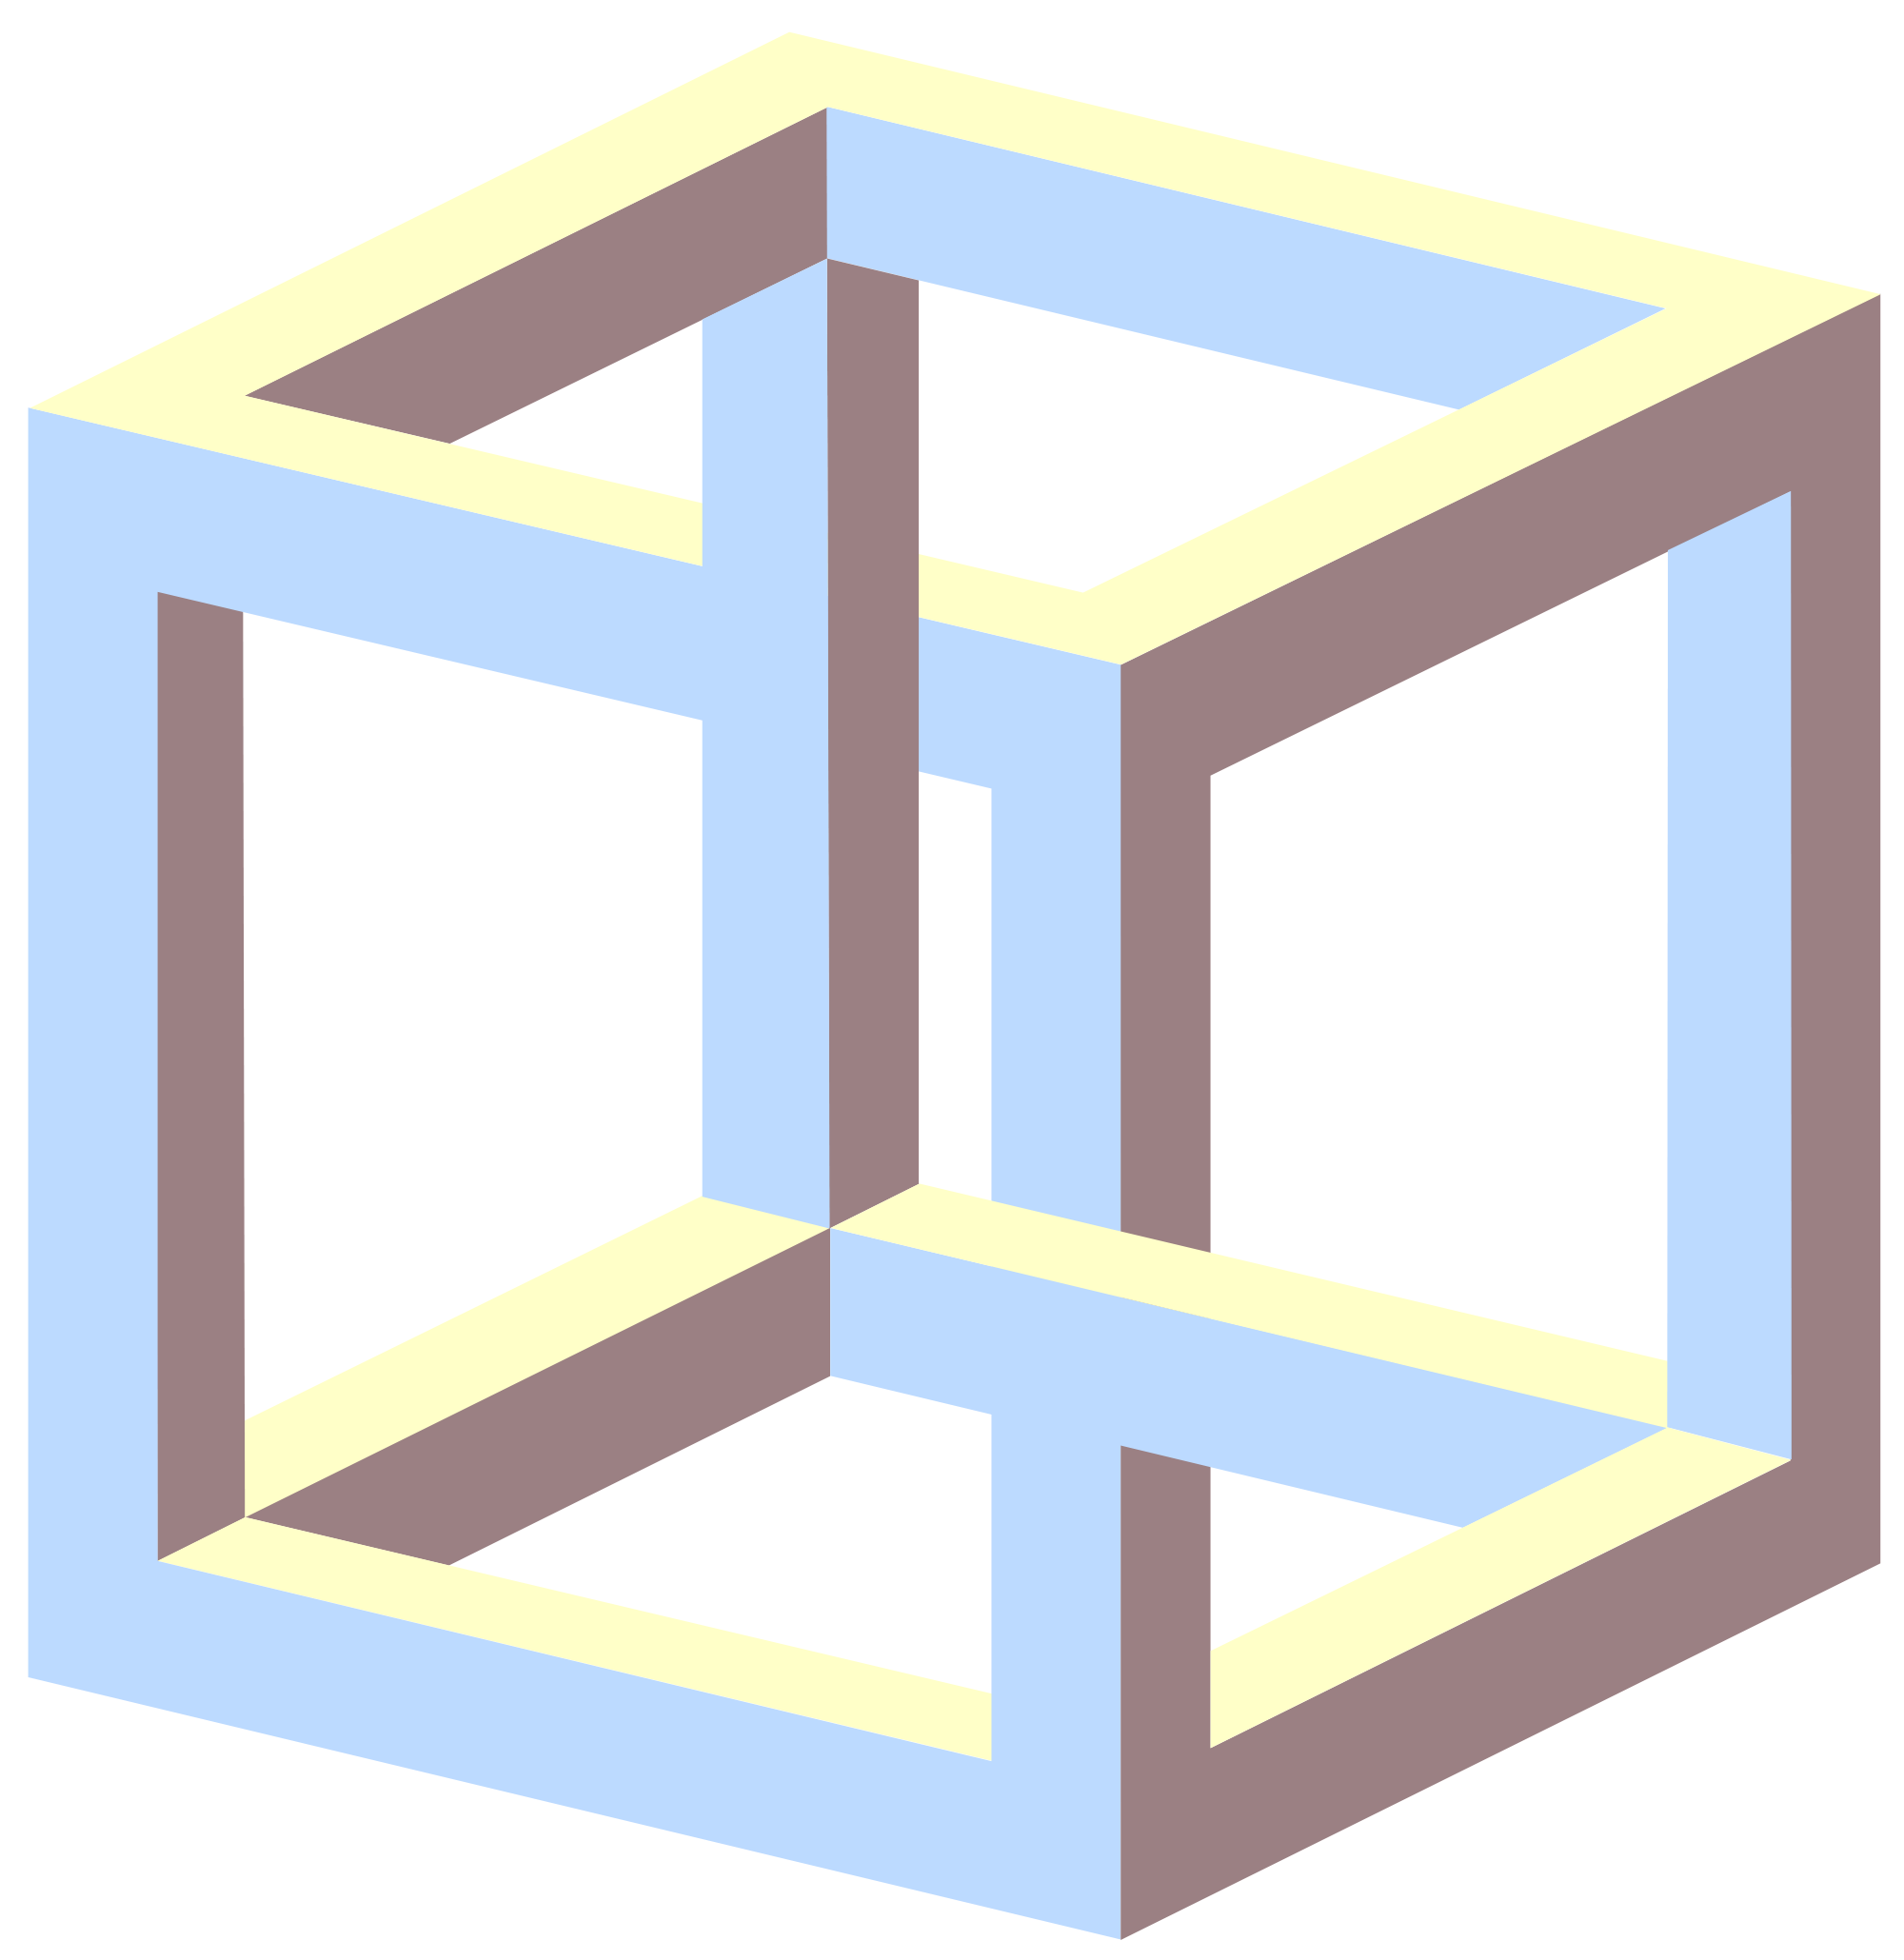 Edge drawing optical illusion. The impossible cube or